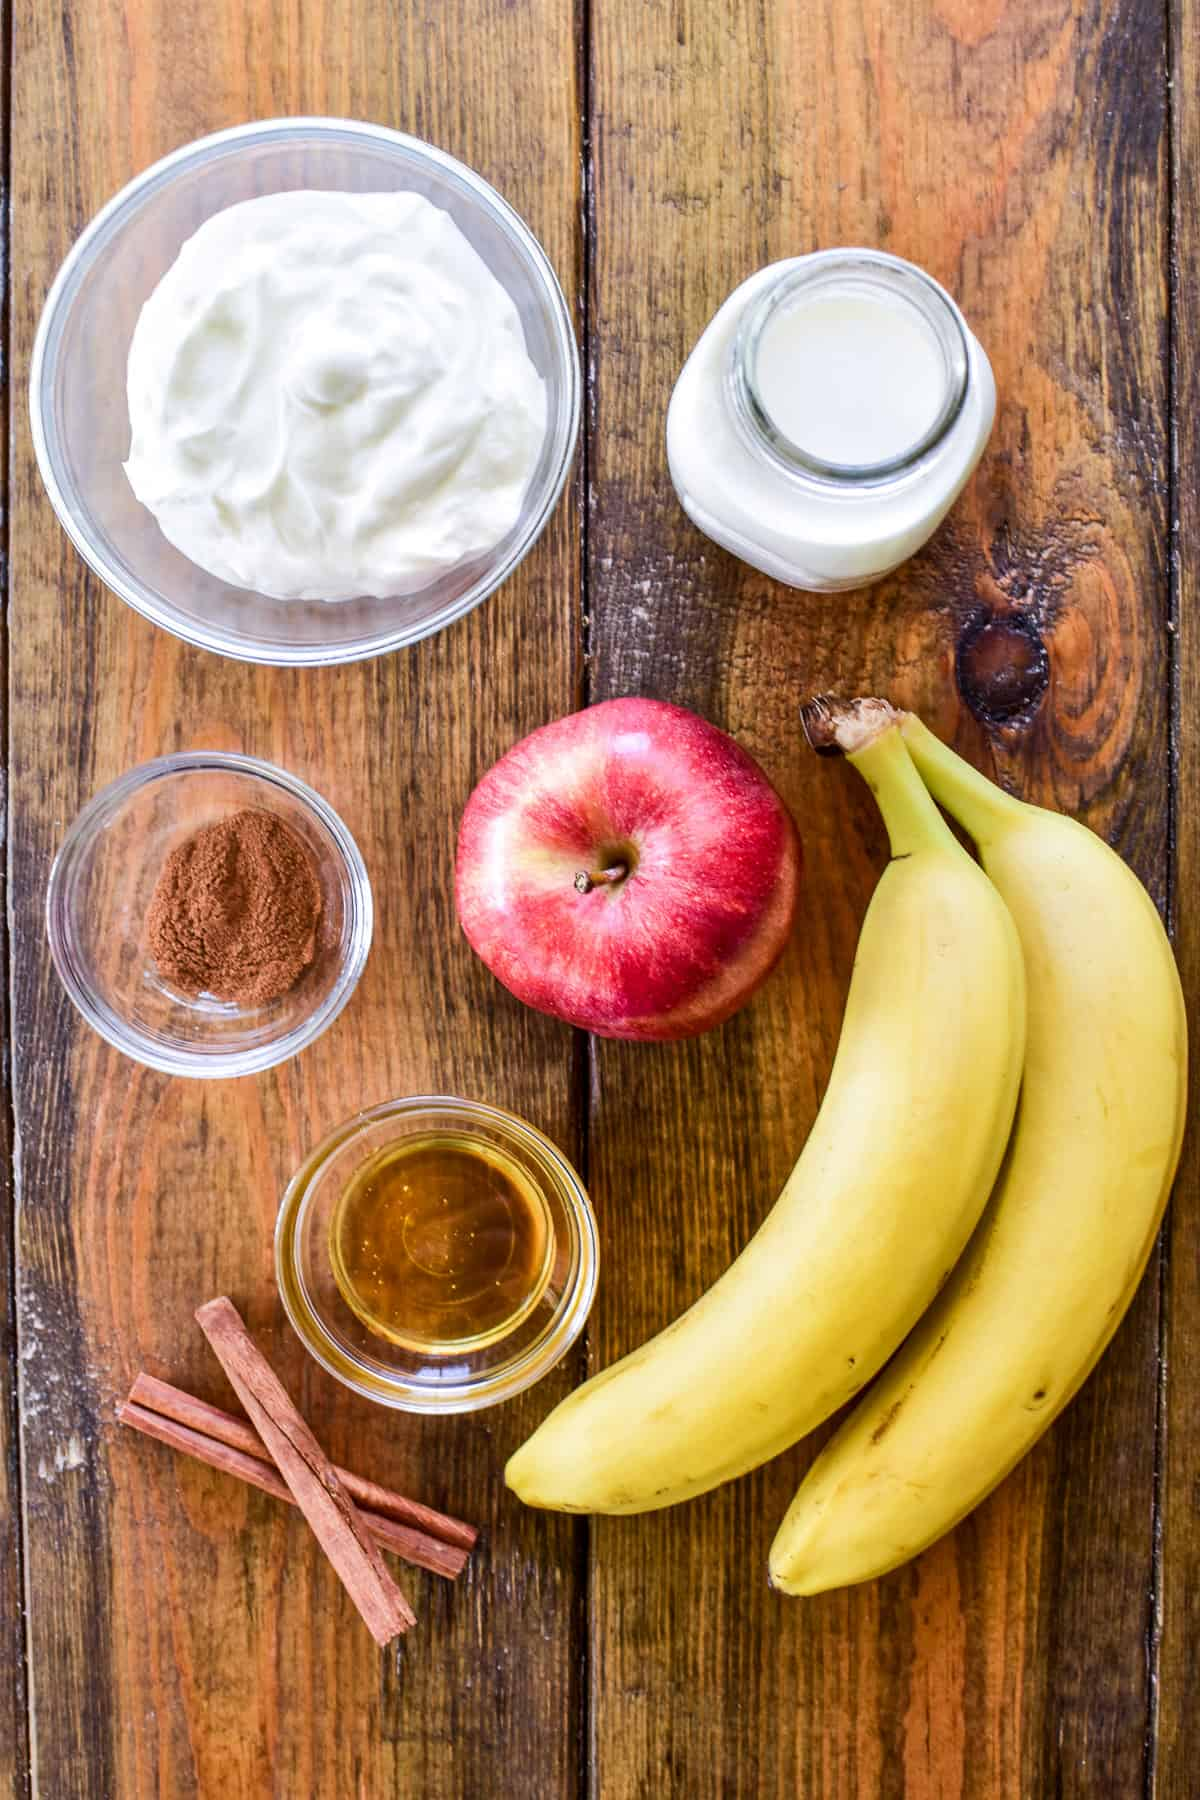 Apple Smoothie ingredients on a wooden board